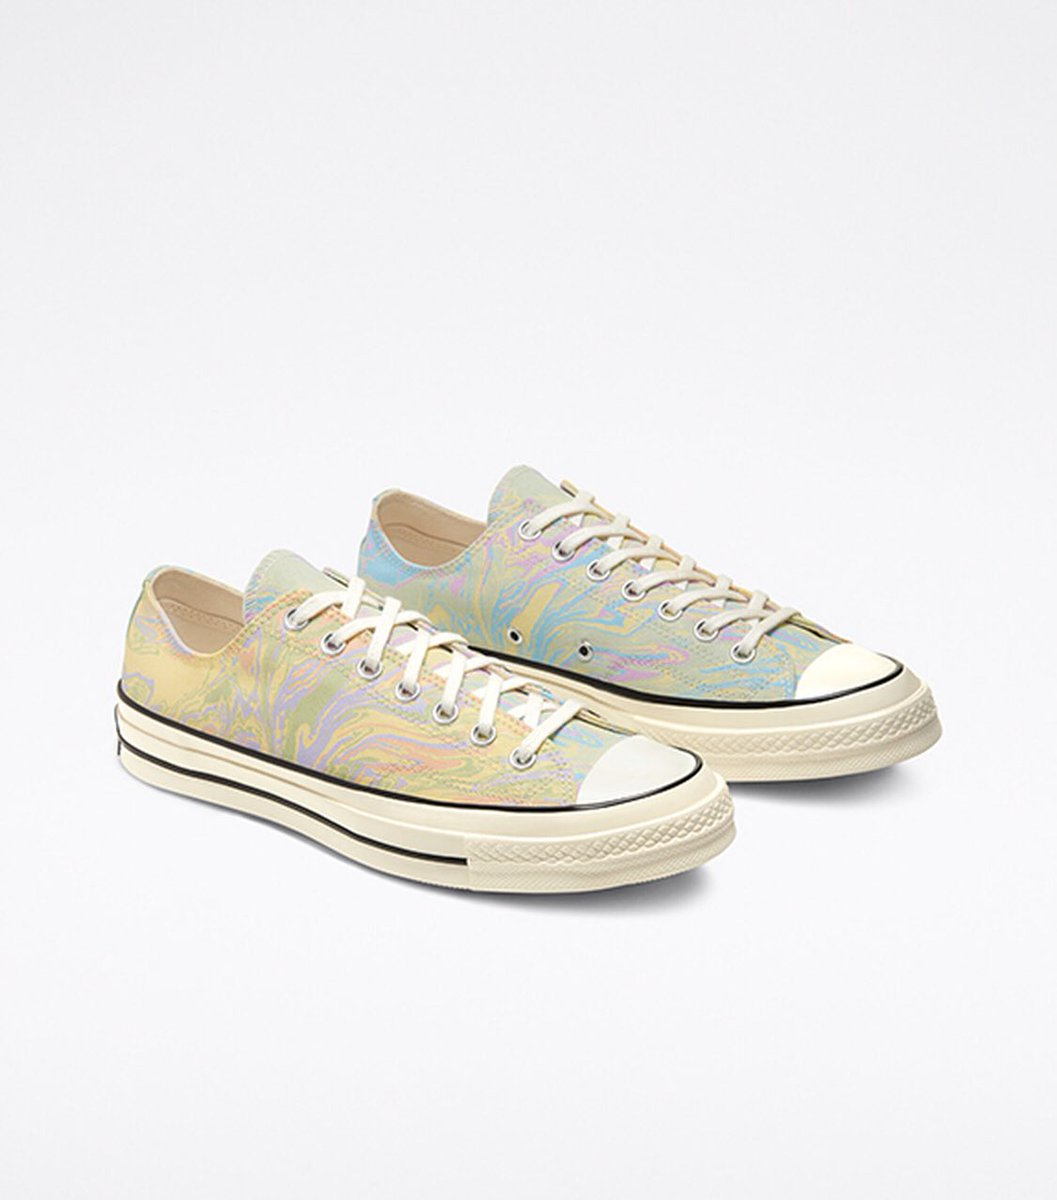 Converse Chuck 70 Marble Pack